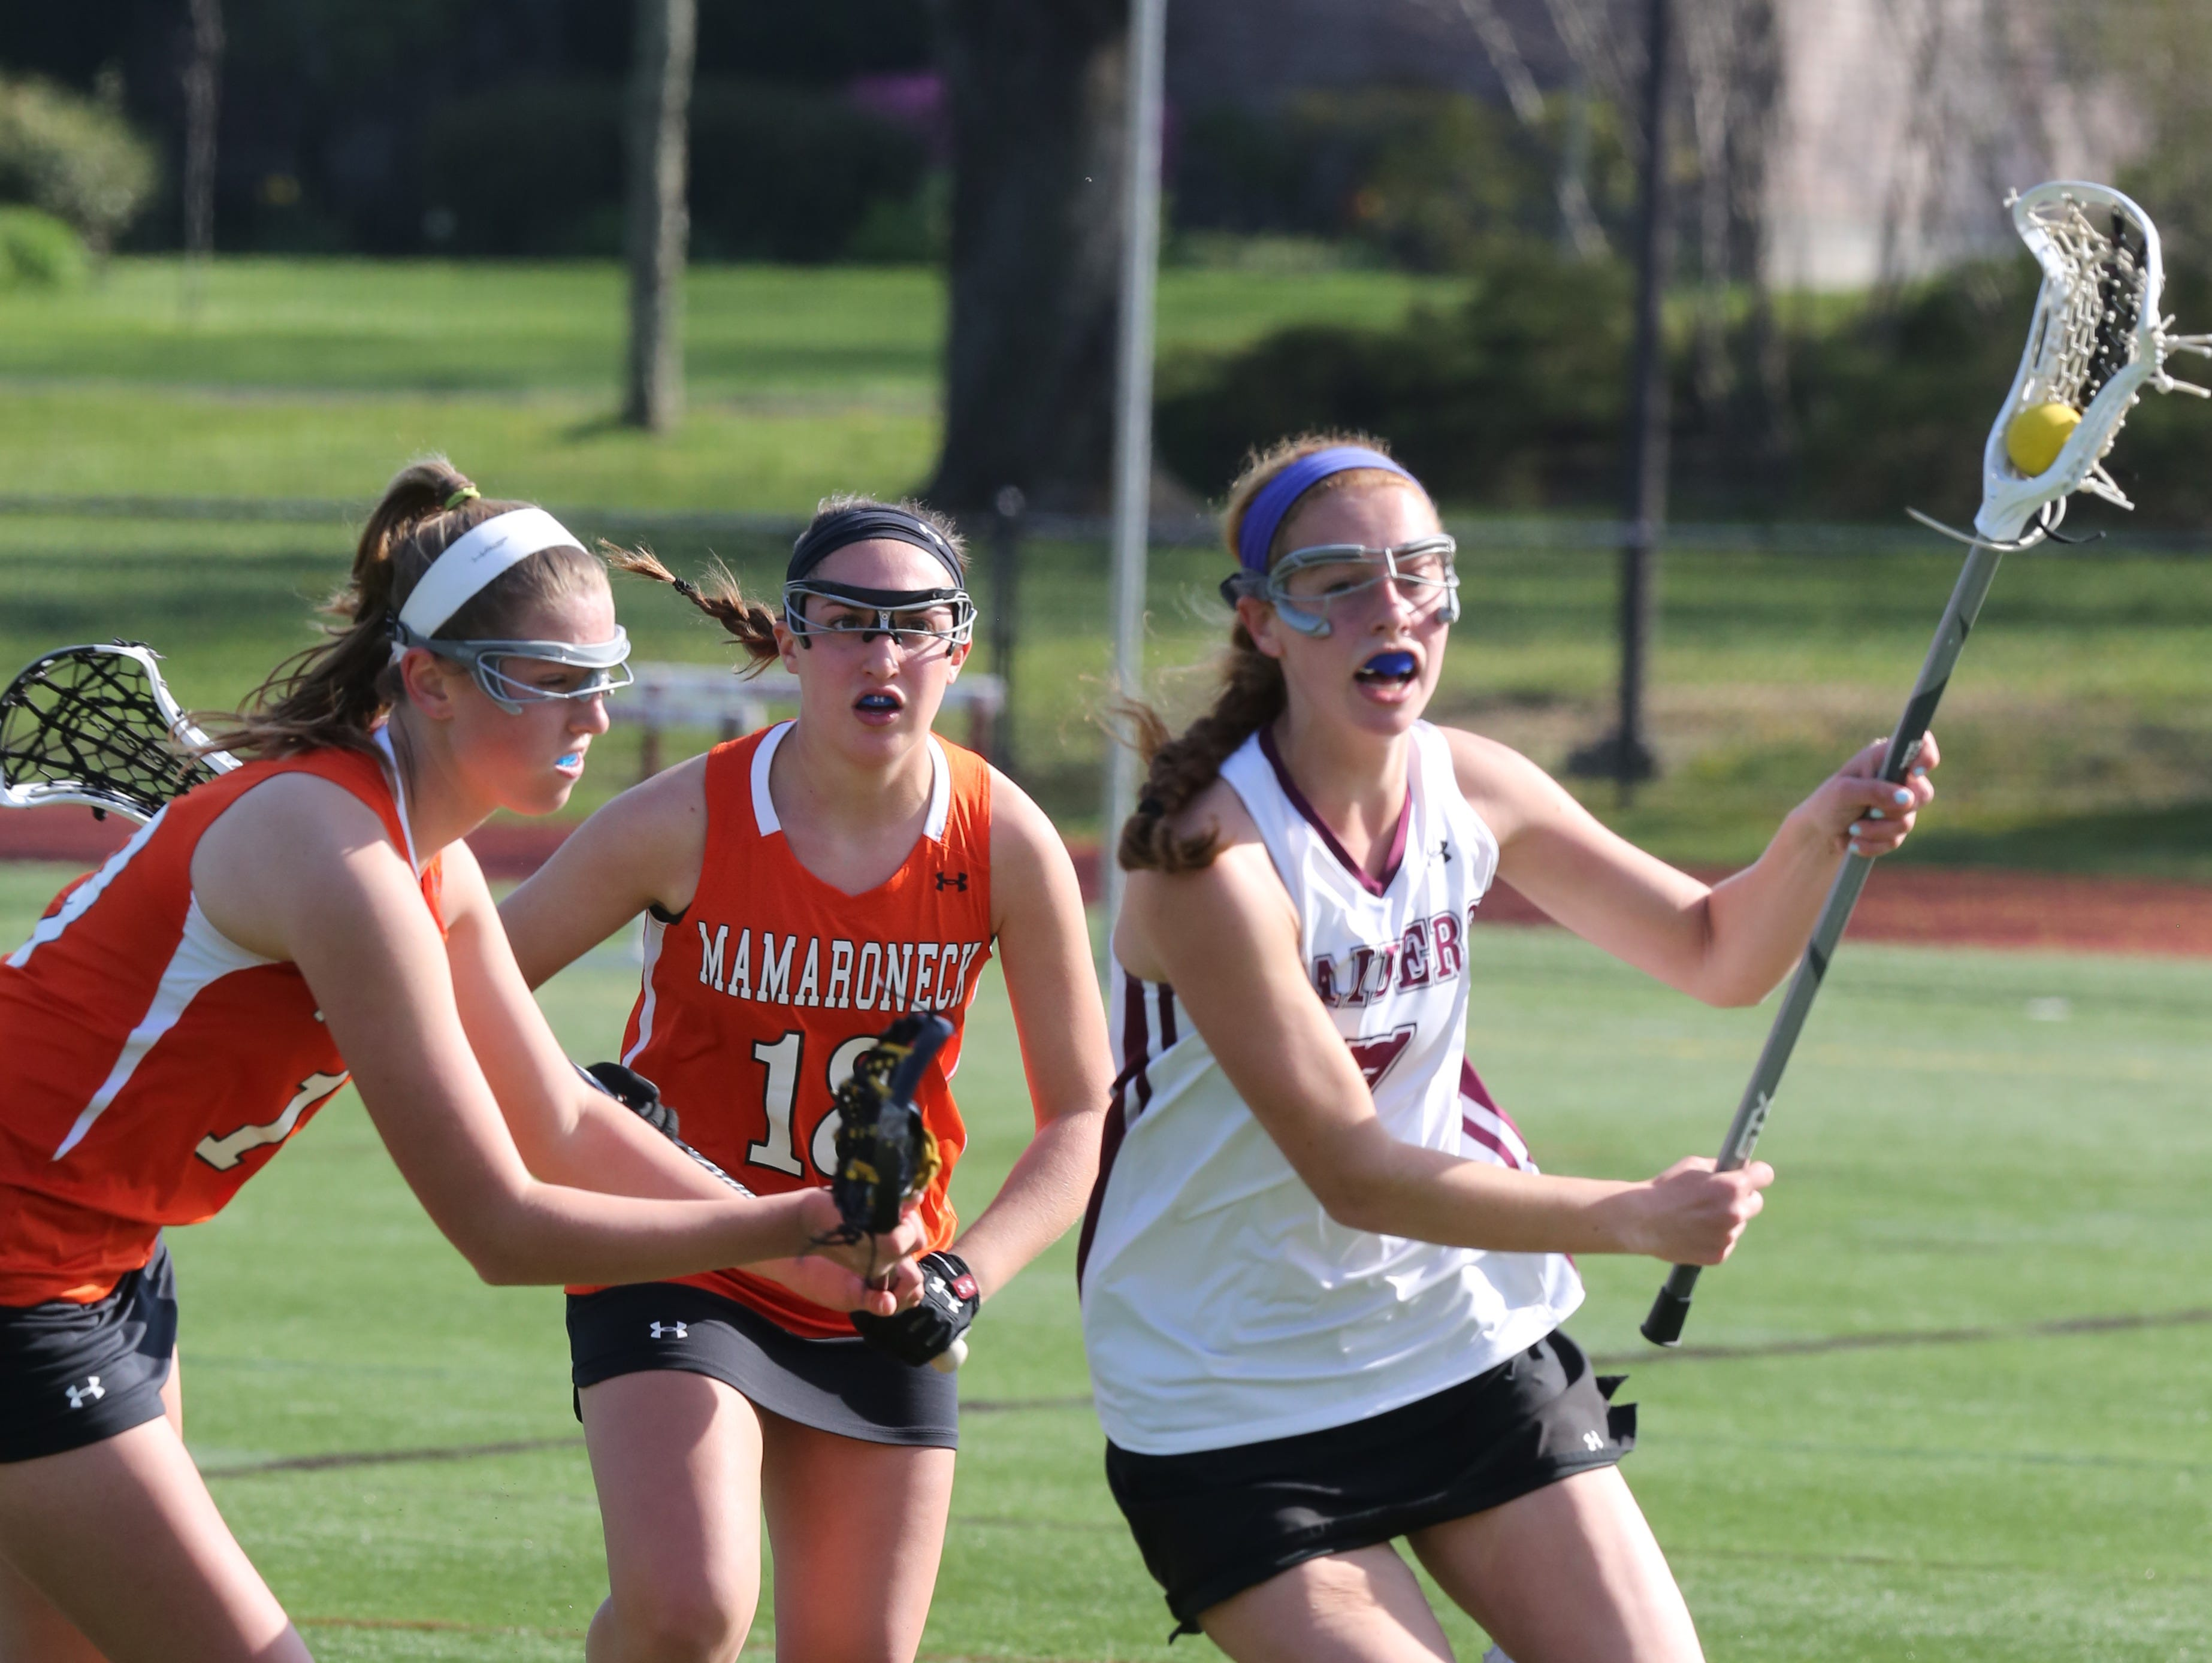 Mamaroneck defeats Scarsdale 9-7 during girls lacrosse game at Scarsdale High School on April 27, 2016.